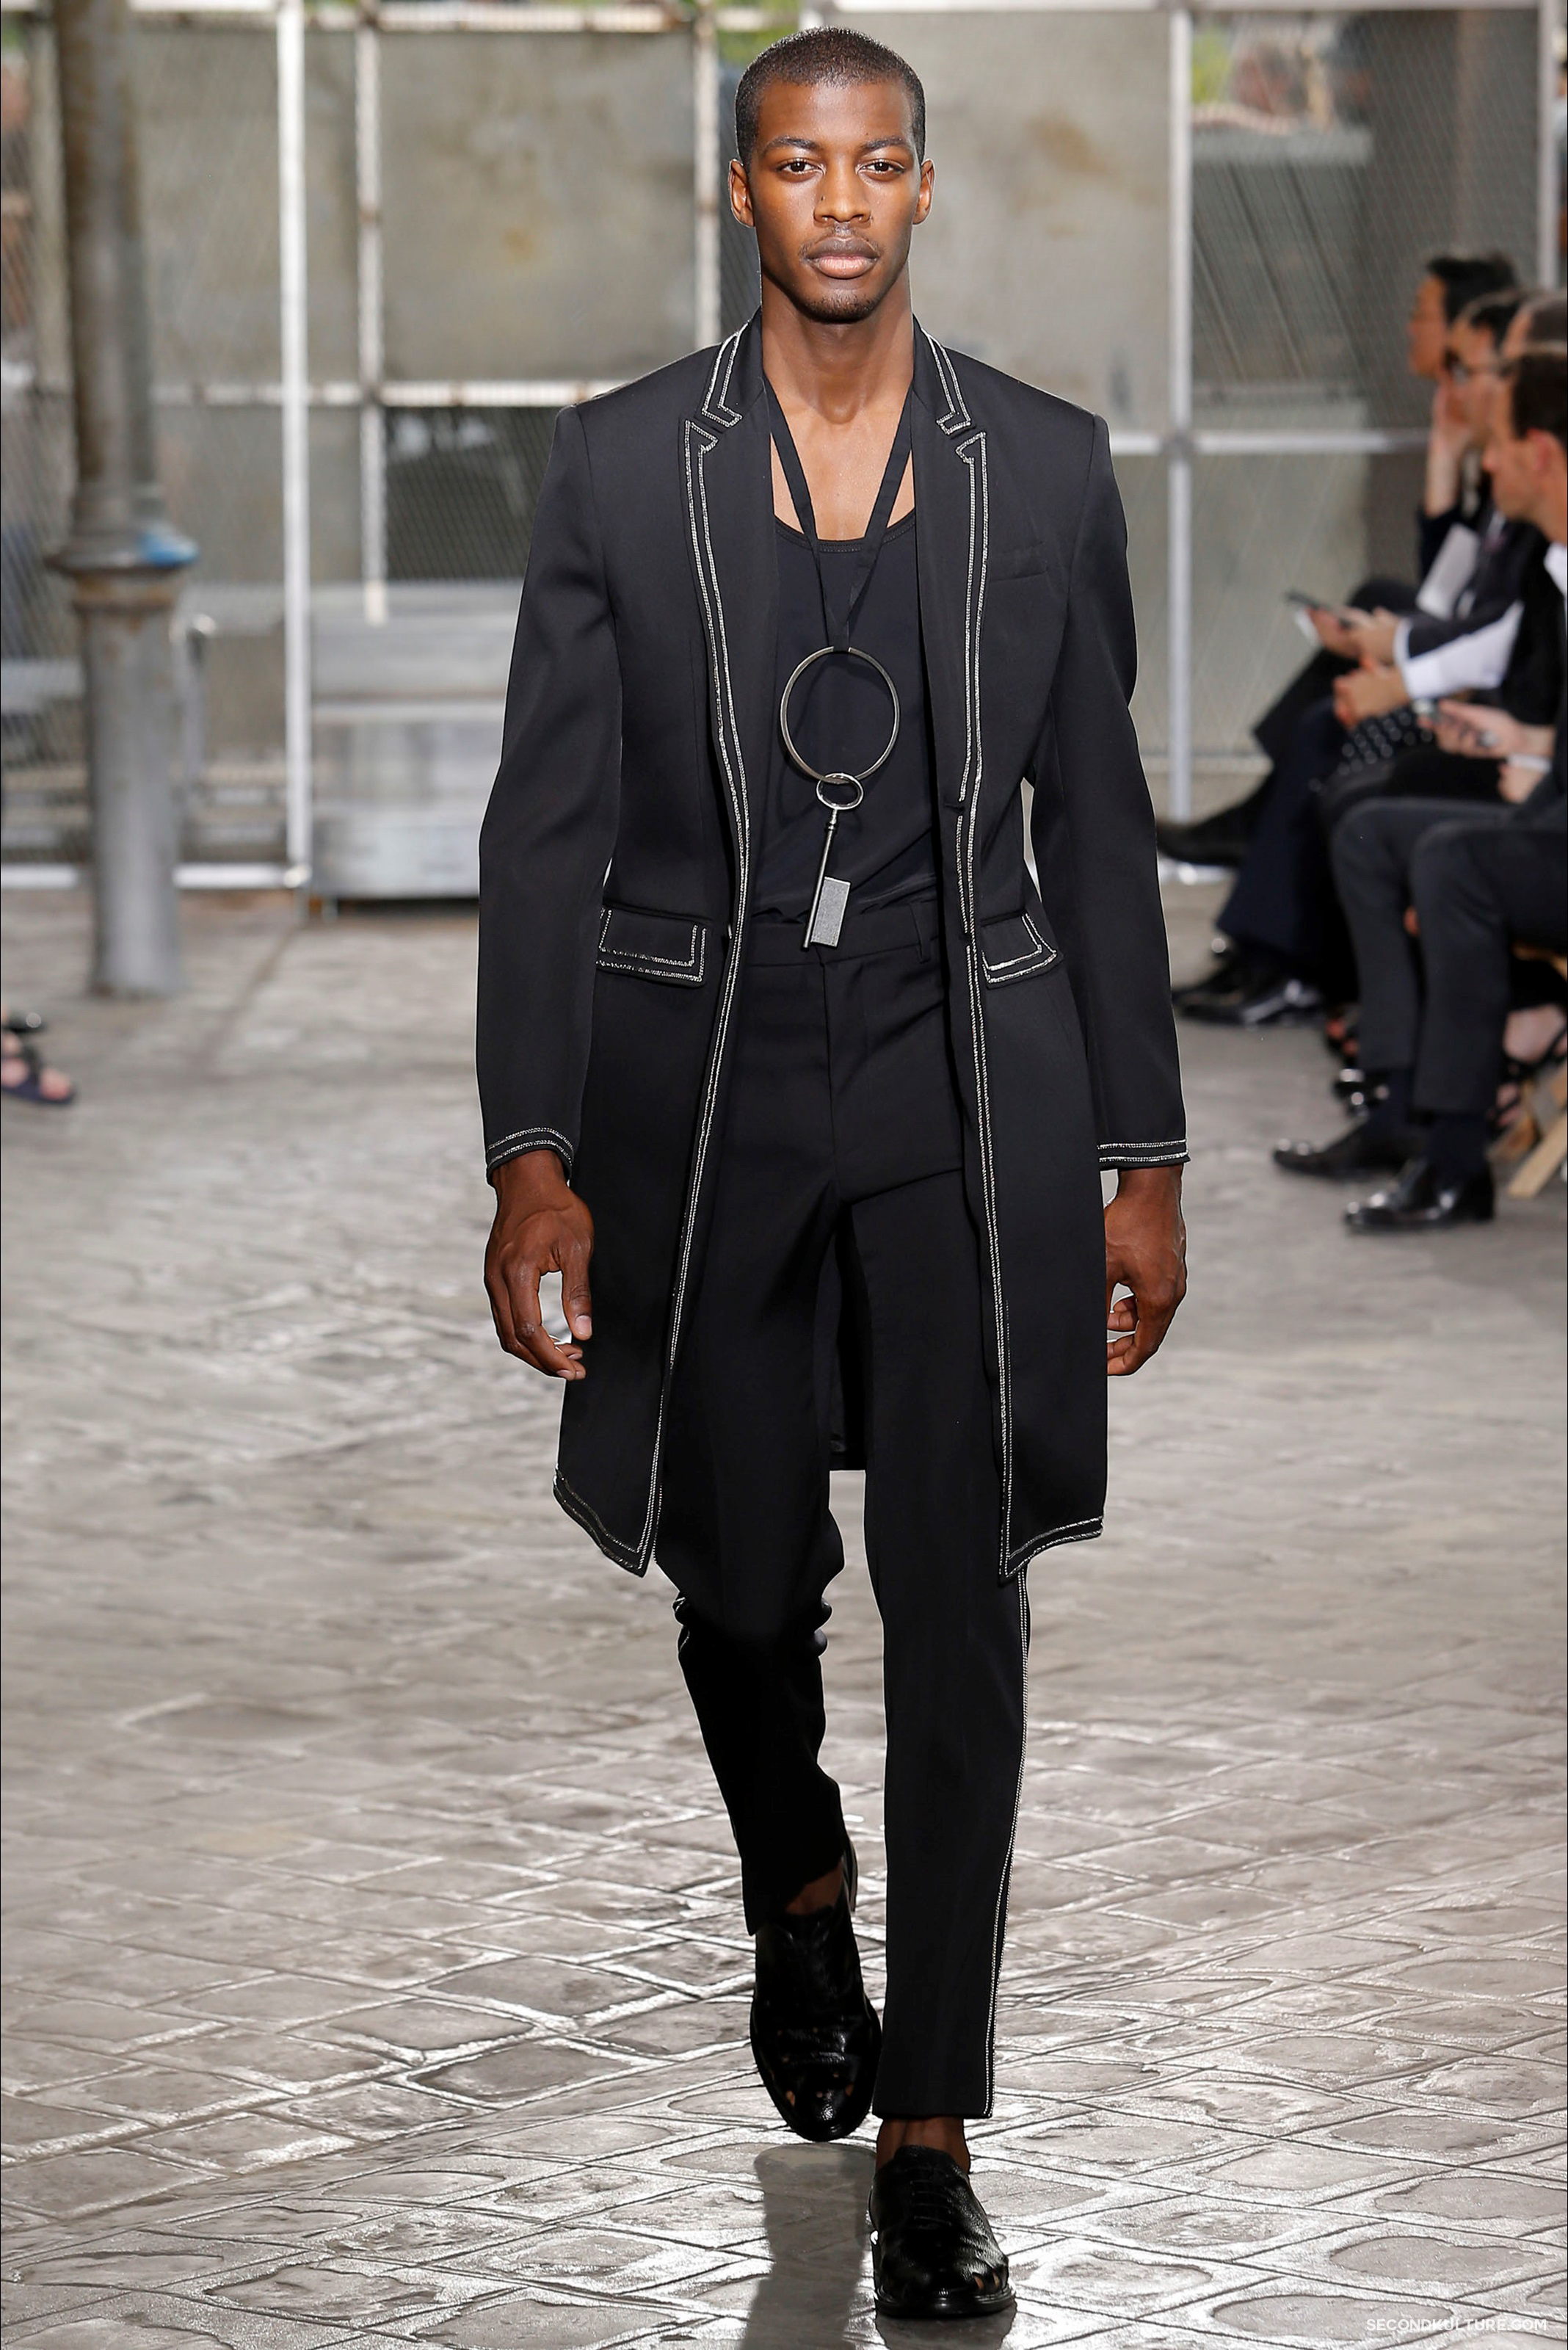 Givenchy Spring Summer 2016 Menswear Jesus Religion Chain Runway Show Look 59